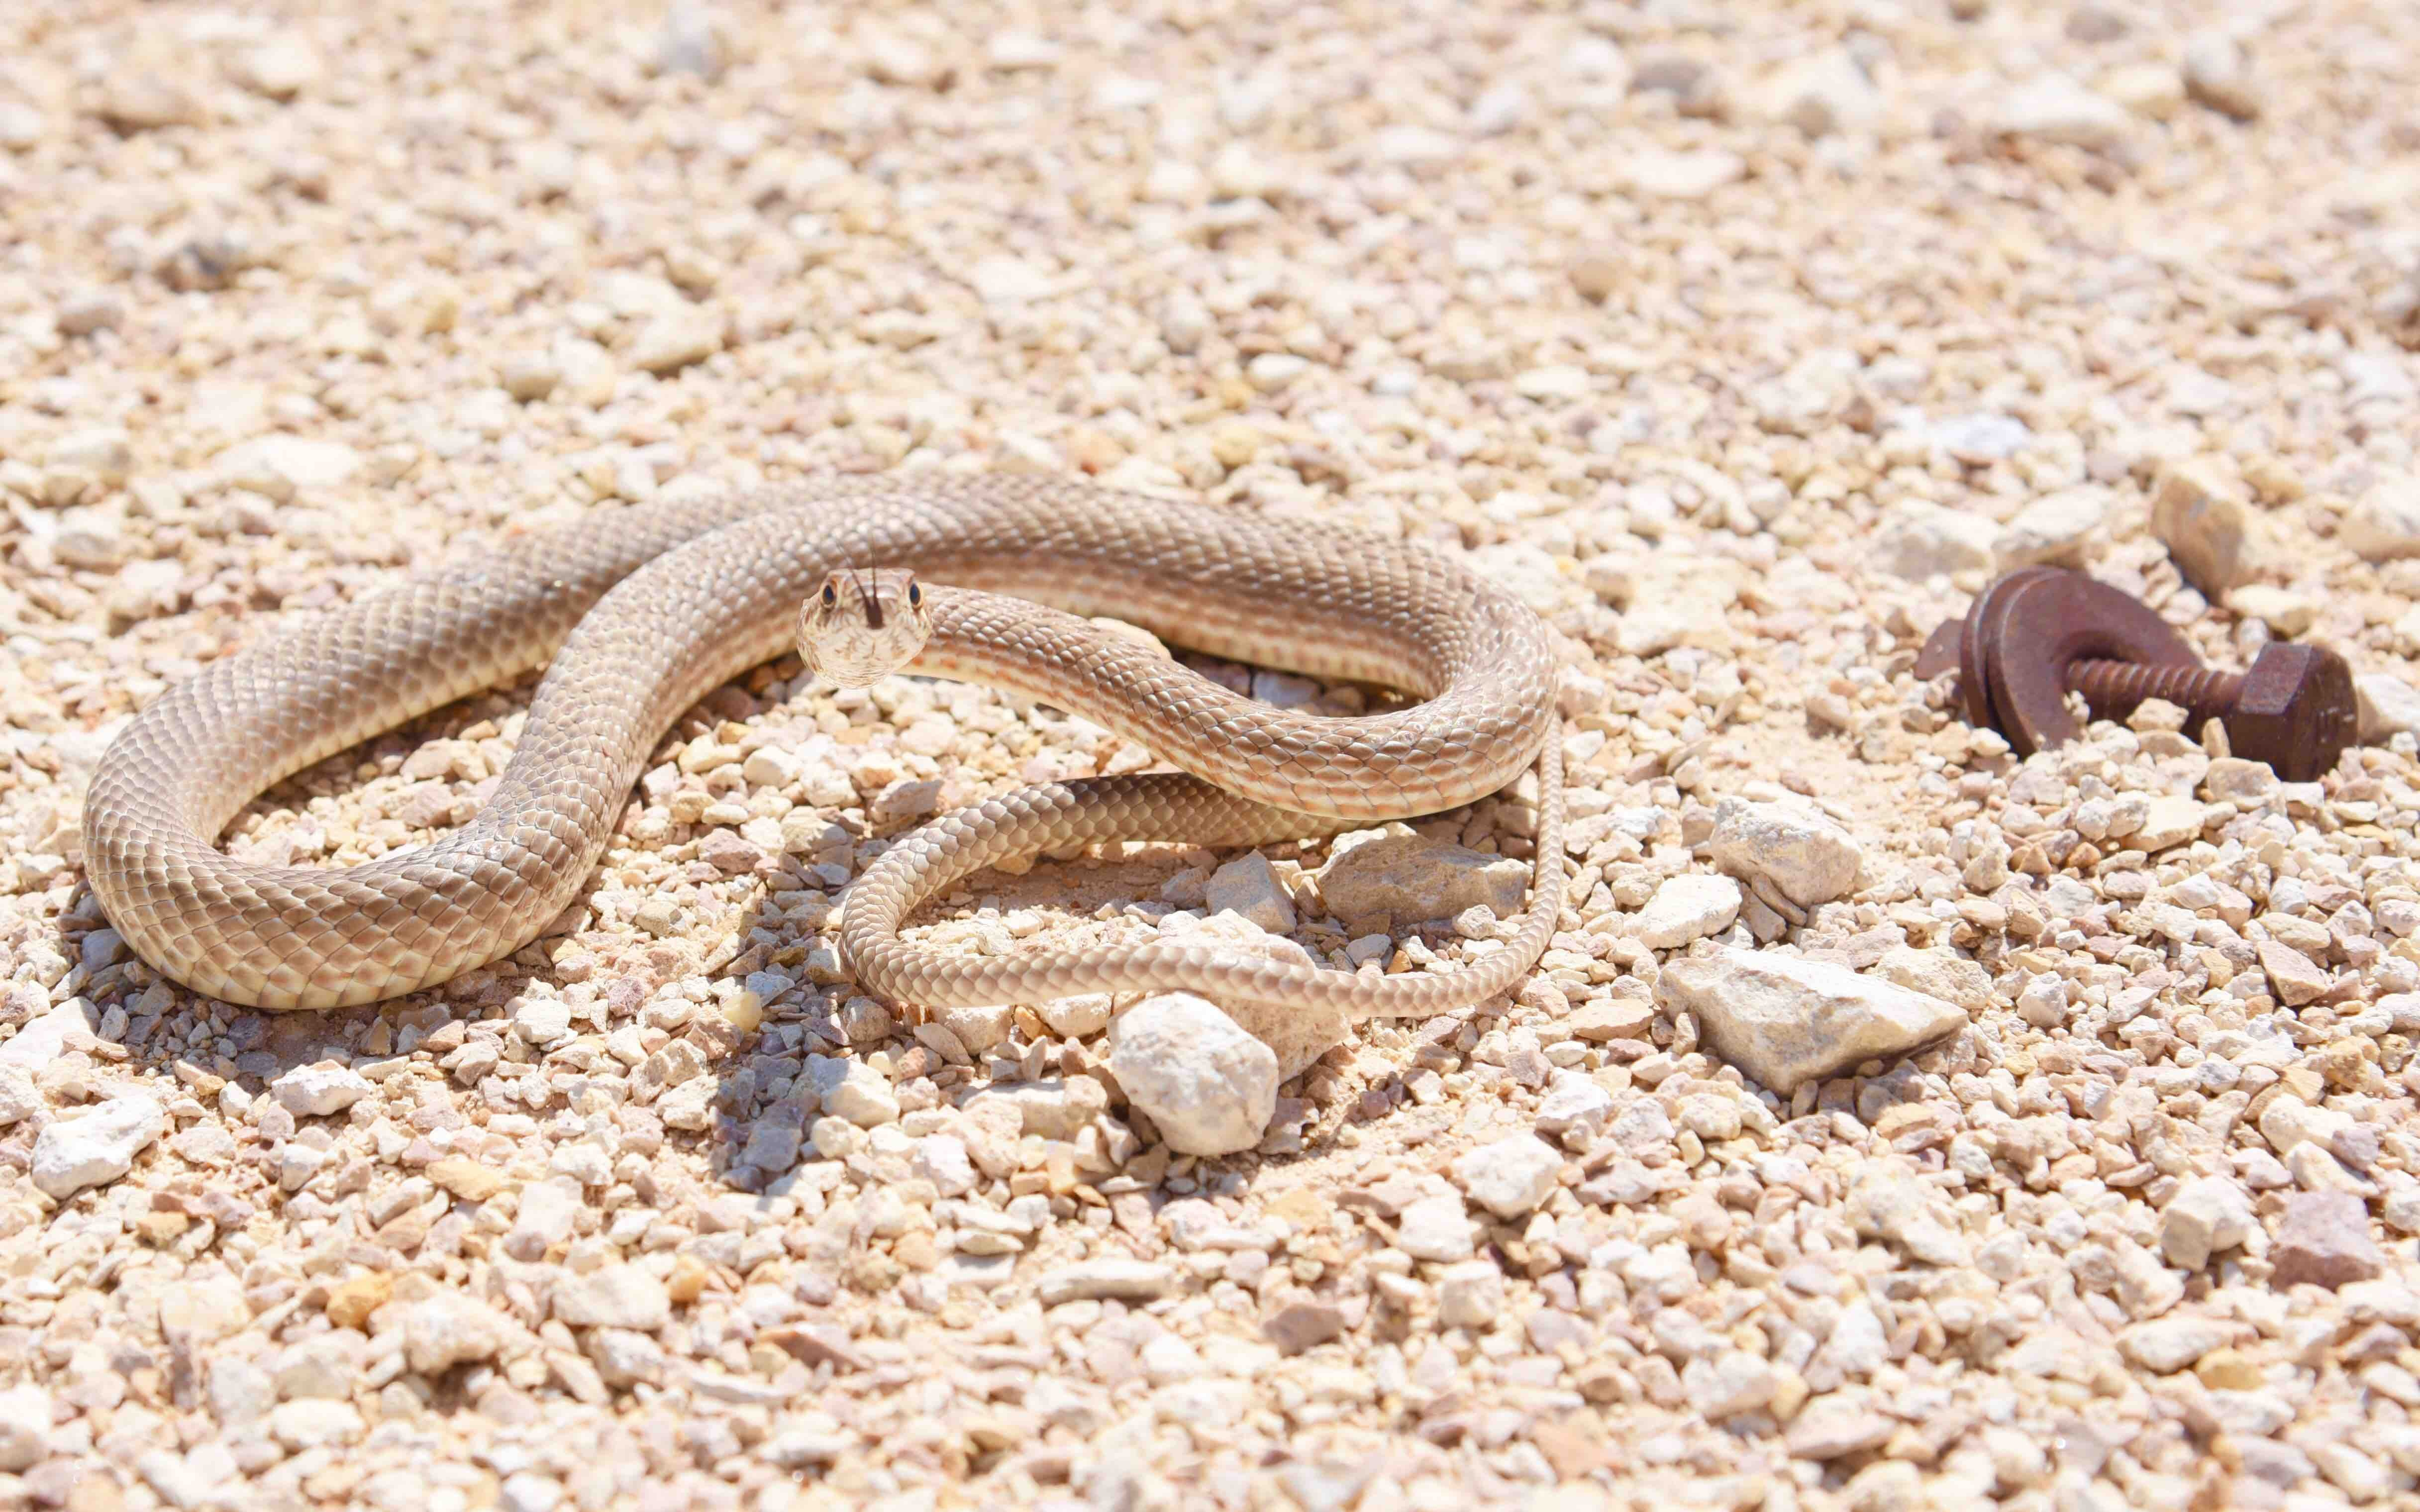 Snake stares down its prey in the sandy gravel